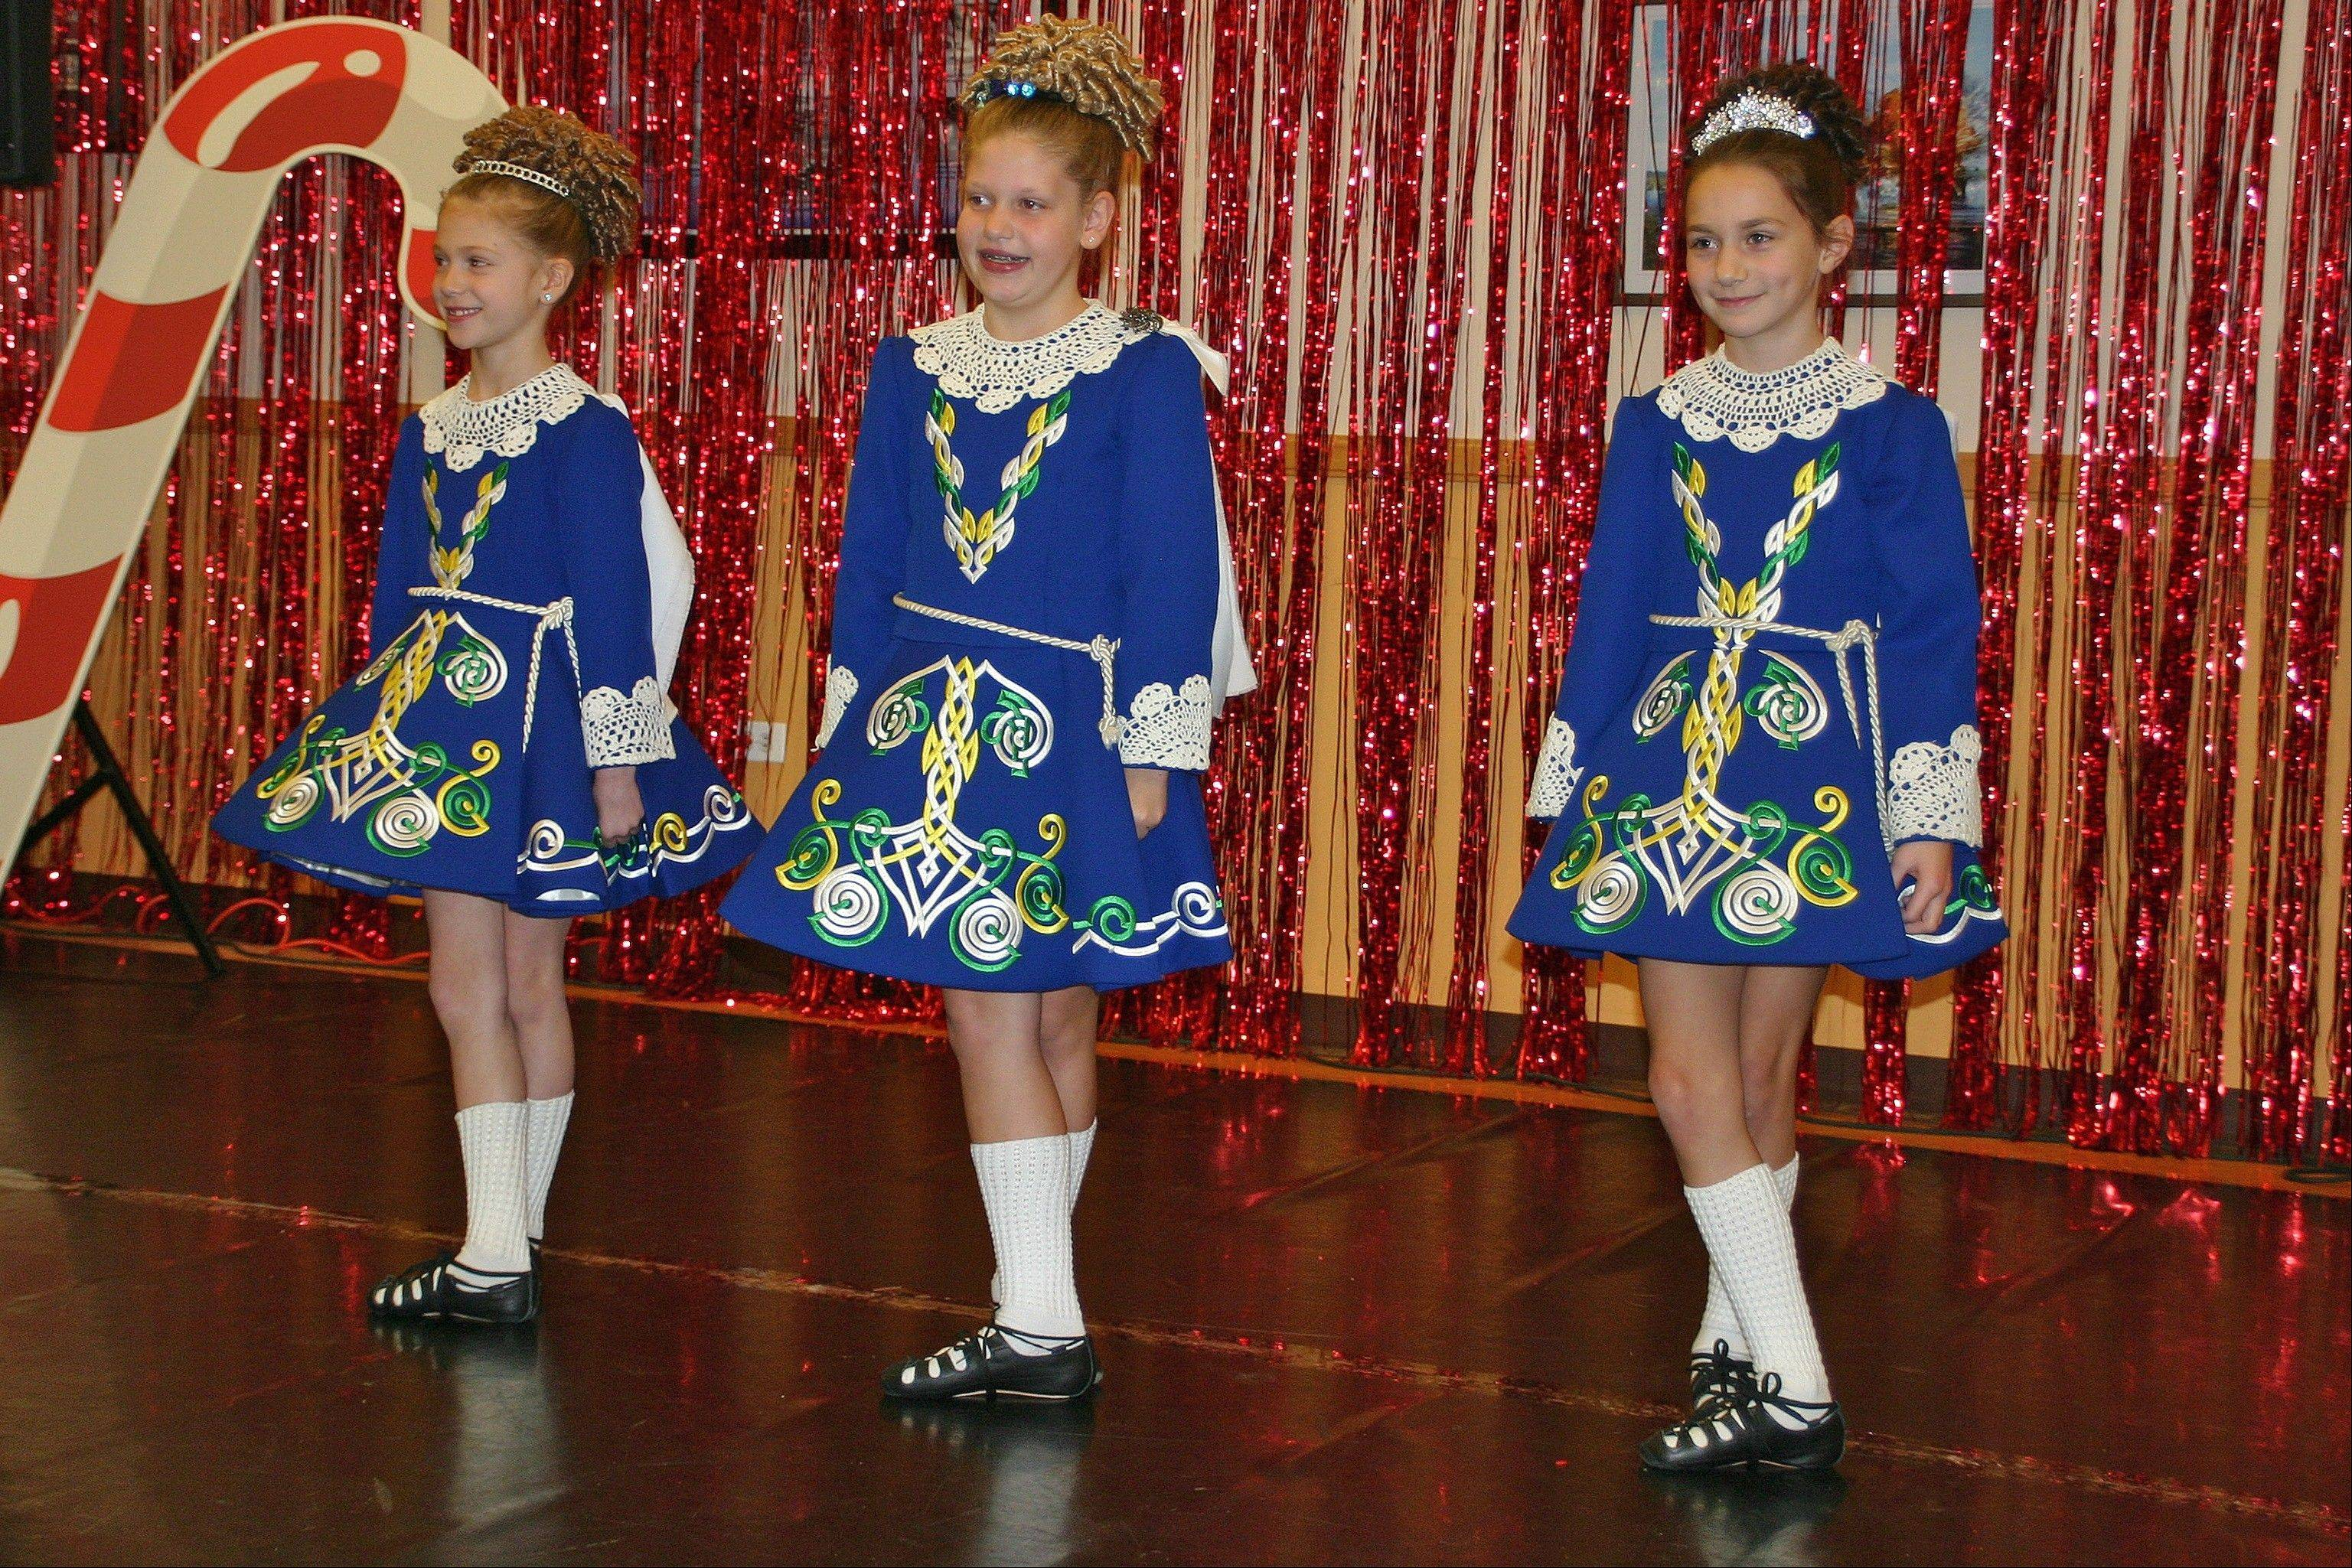 Cheer on the O'Hare Irish Dancers as they perform traditional jigs, group dances and the hardshoe at 2 p.m. on Sunday, Dec. 8.